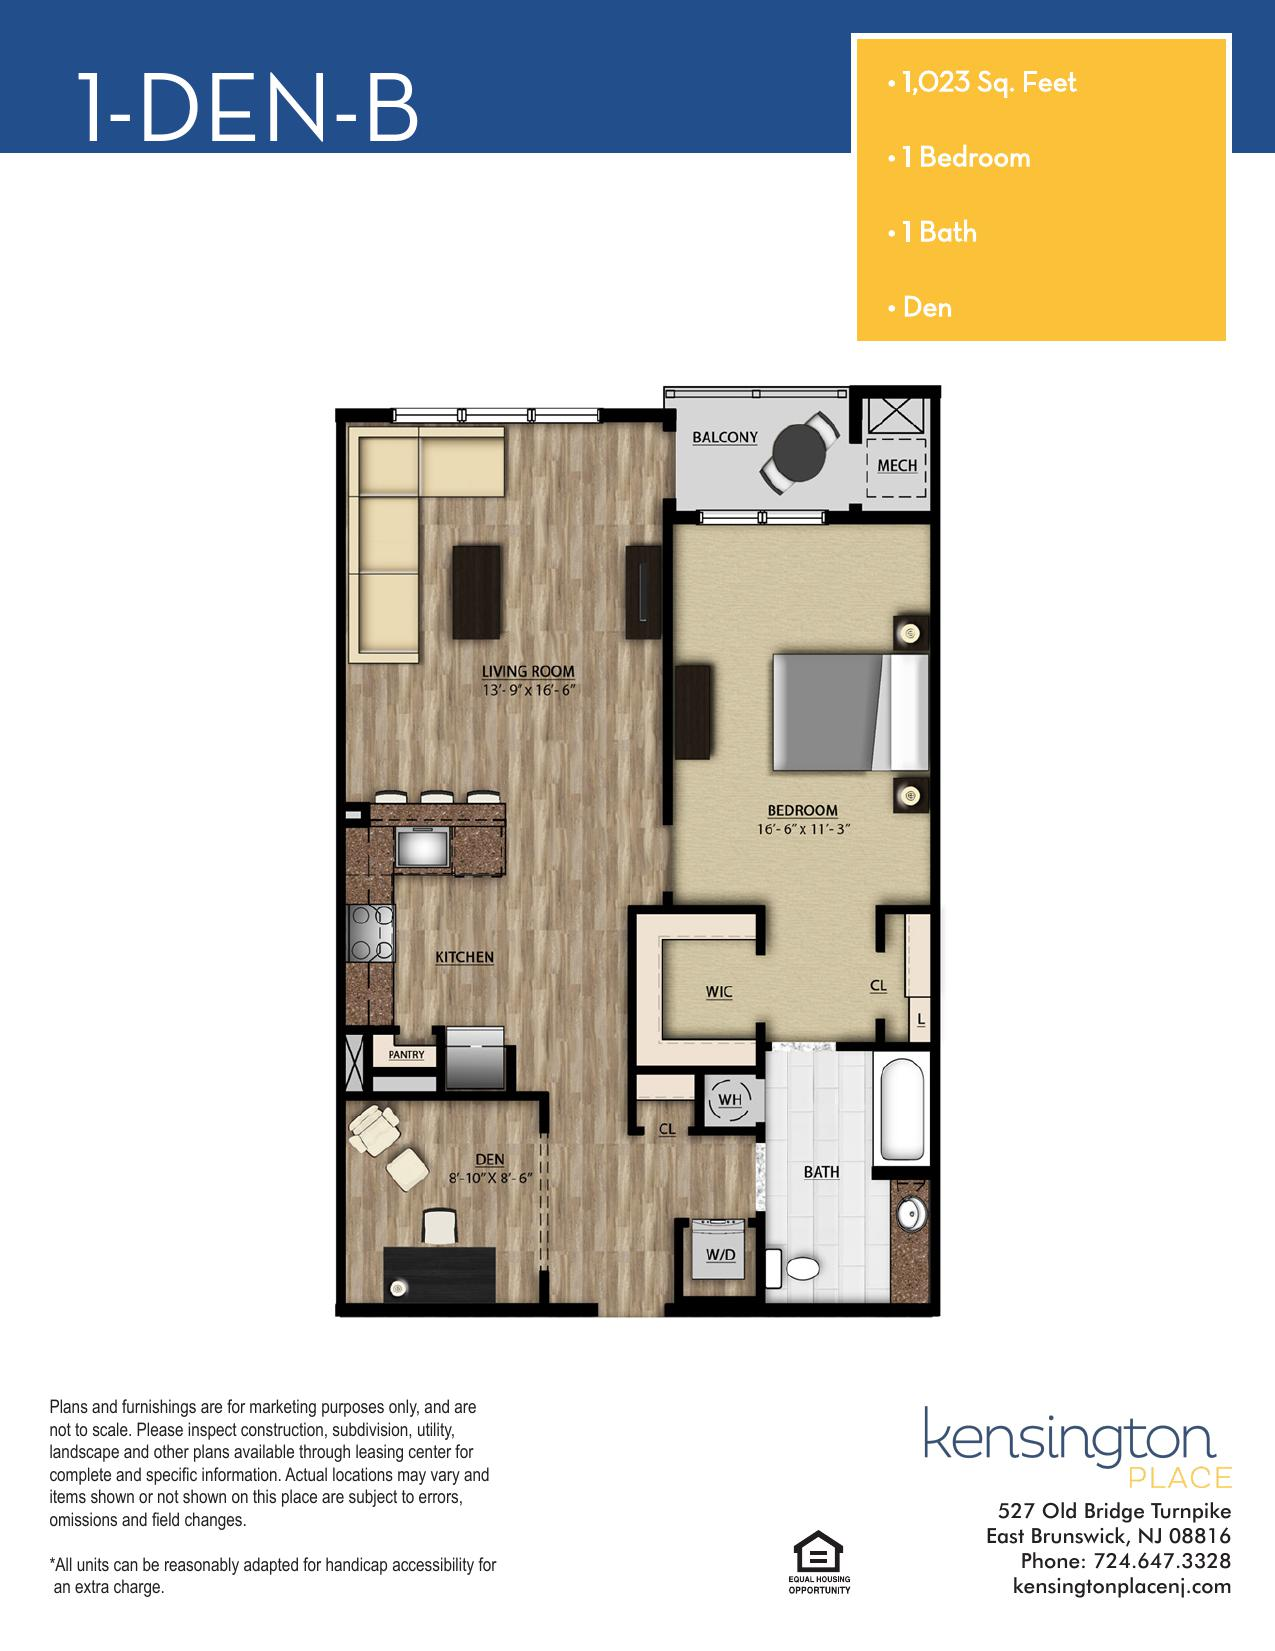 1 DEN B Floor Plan